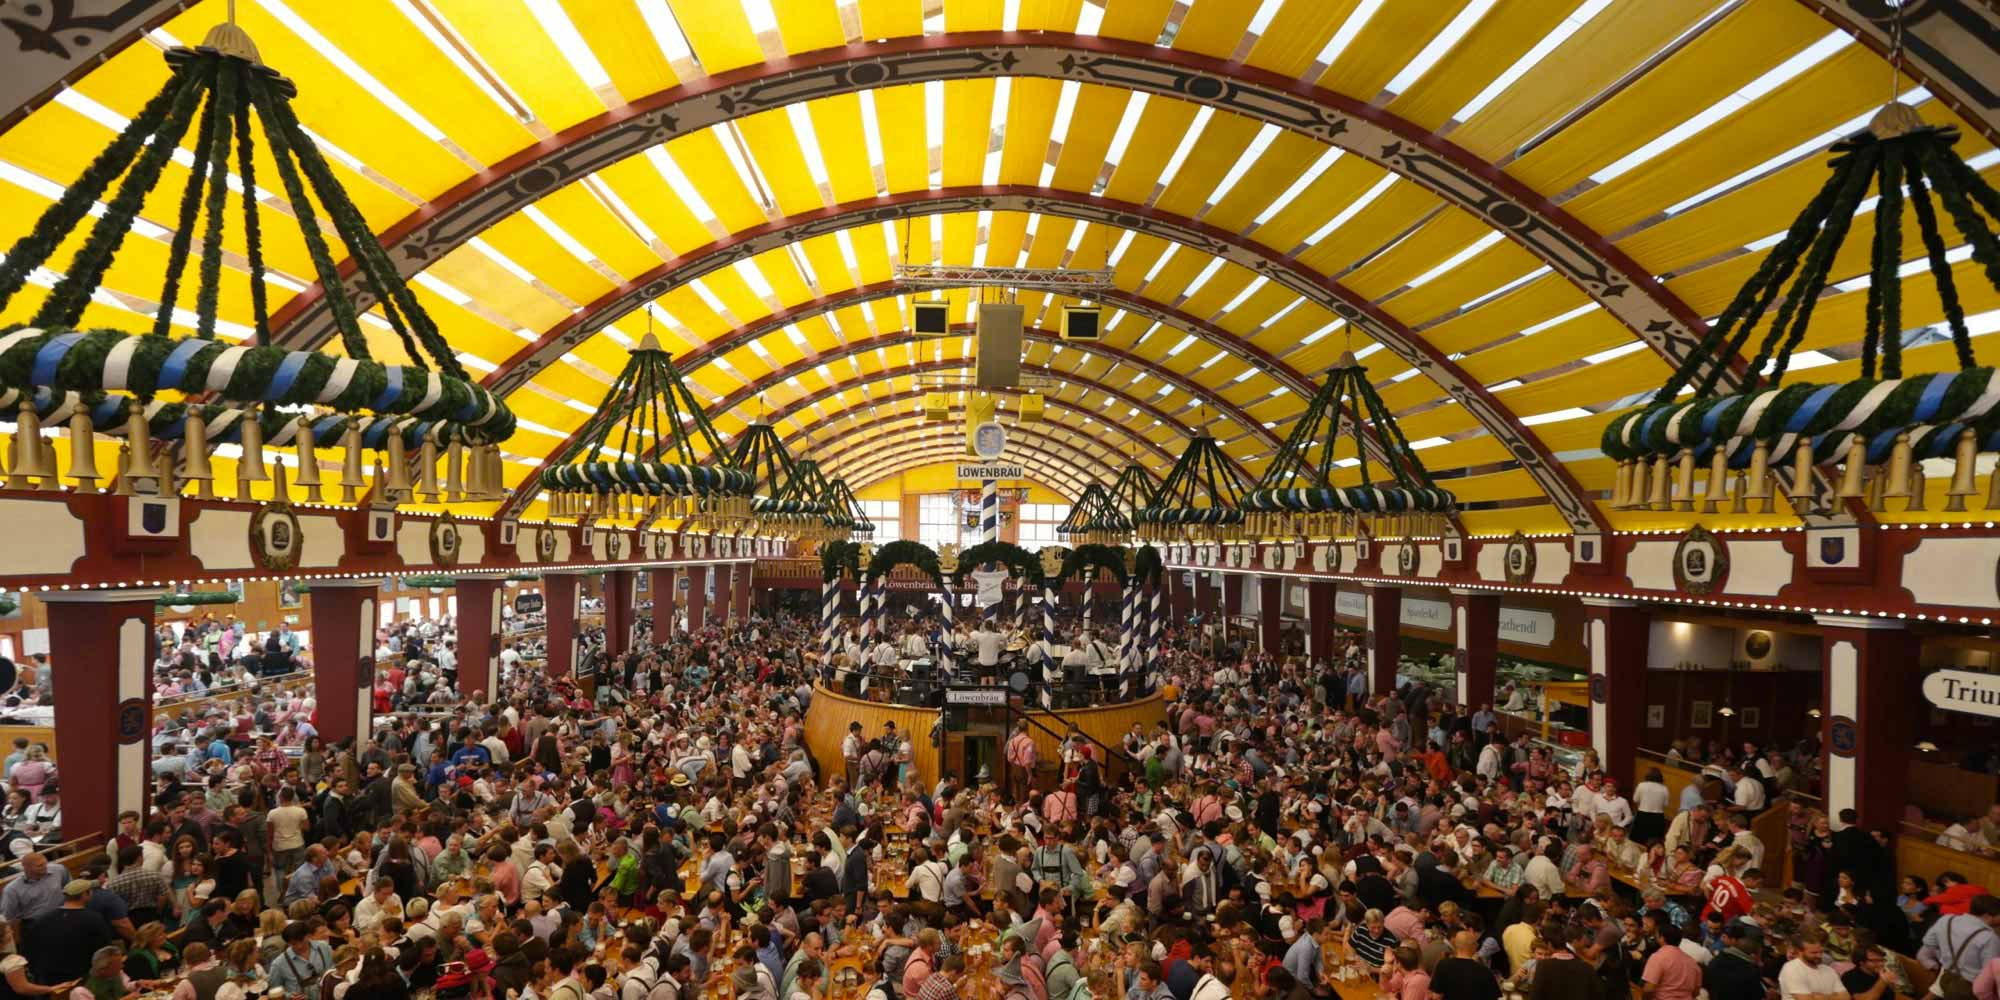 SIX TIPS TO SURVIVE THE 2017 OKTOBERFEST